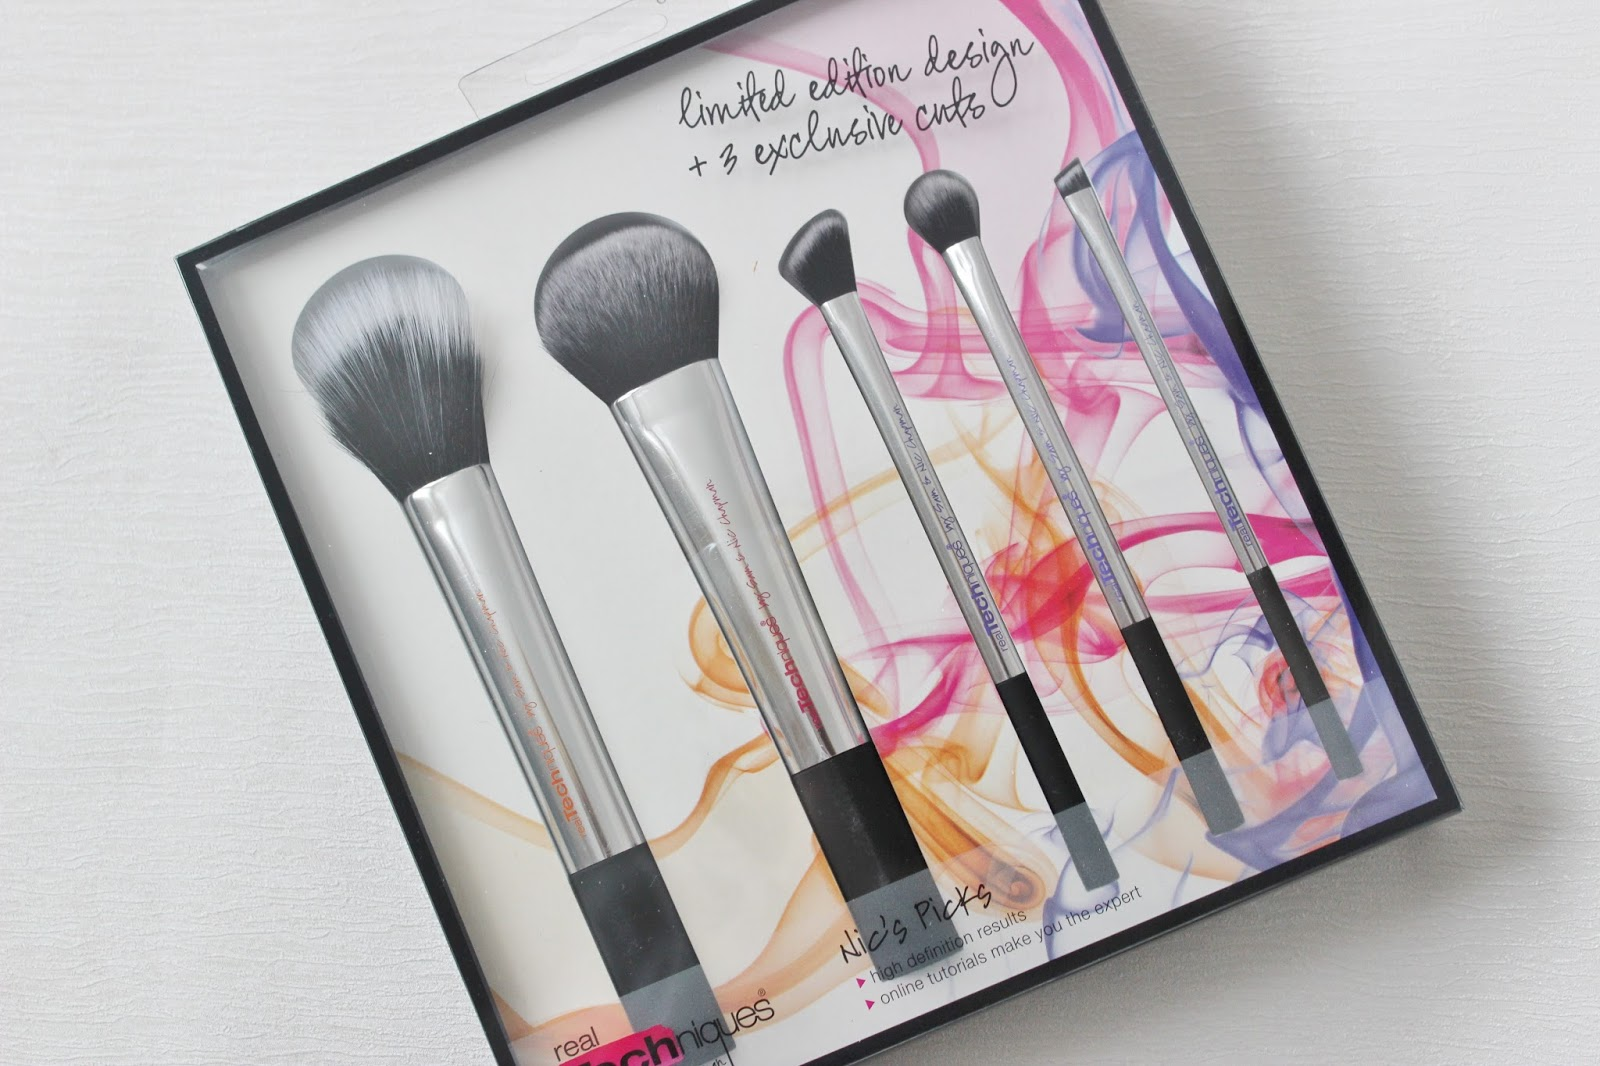 Real Techniques Nic's picks brush collection